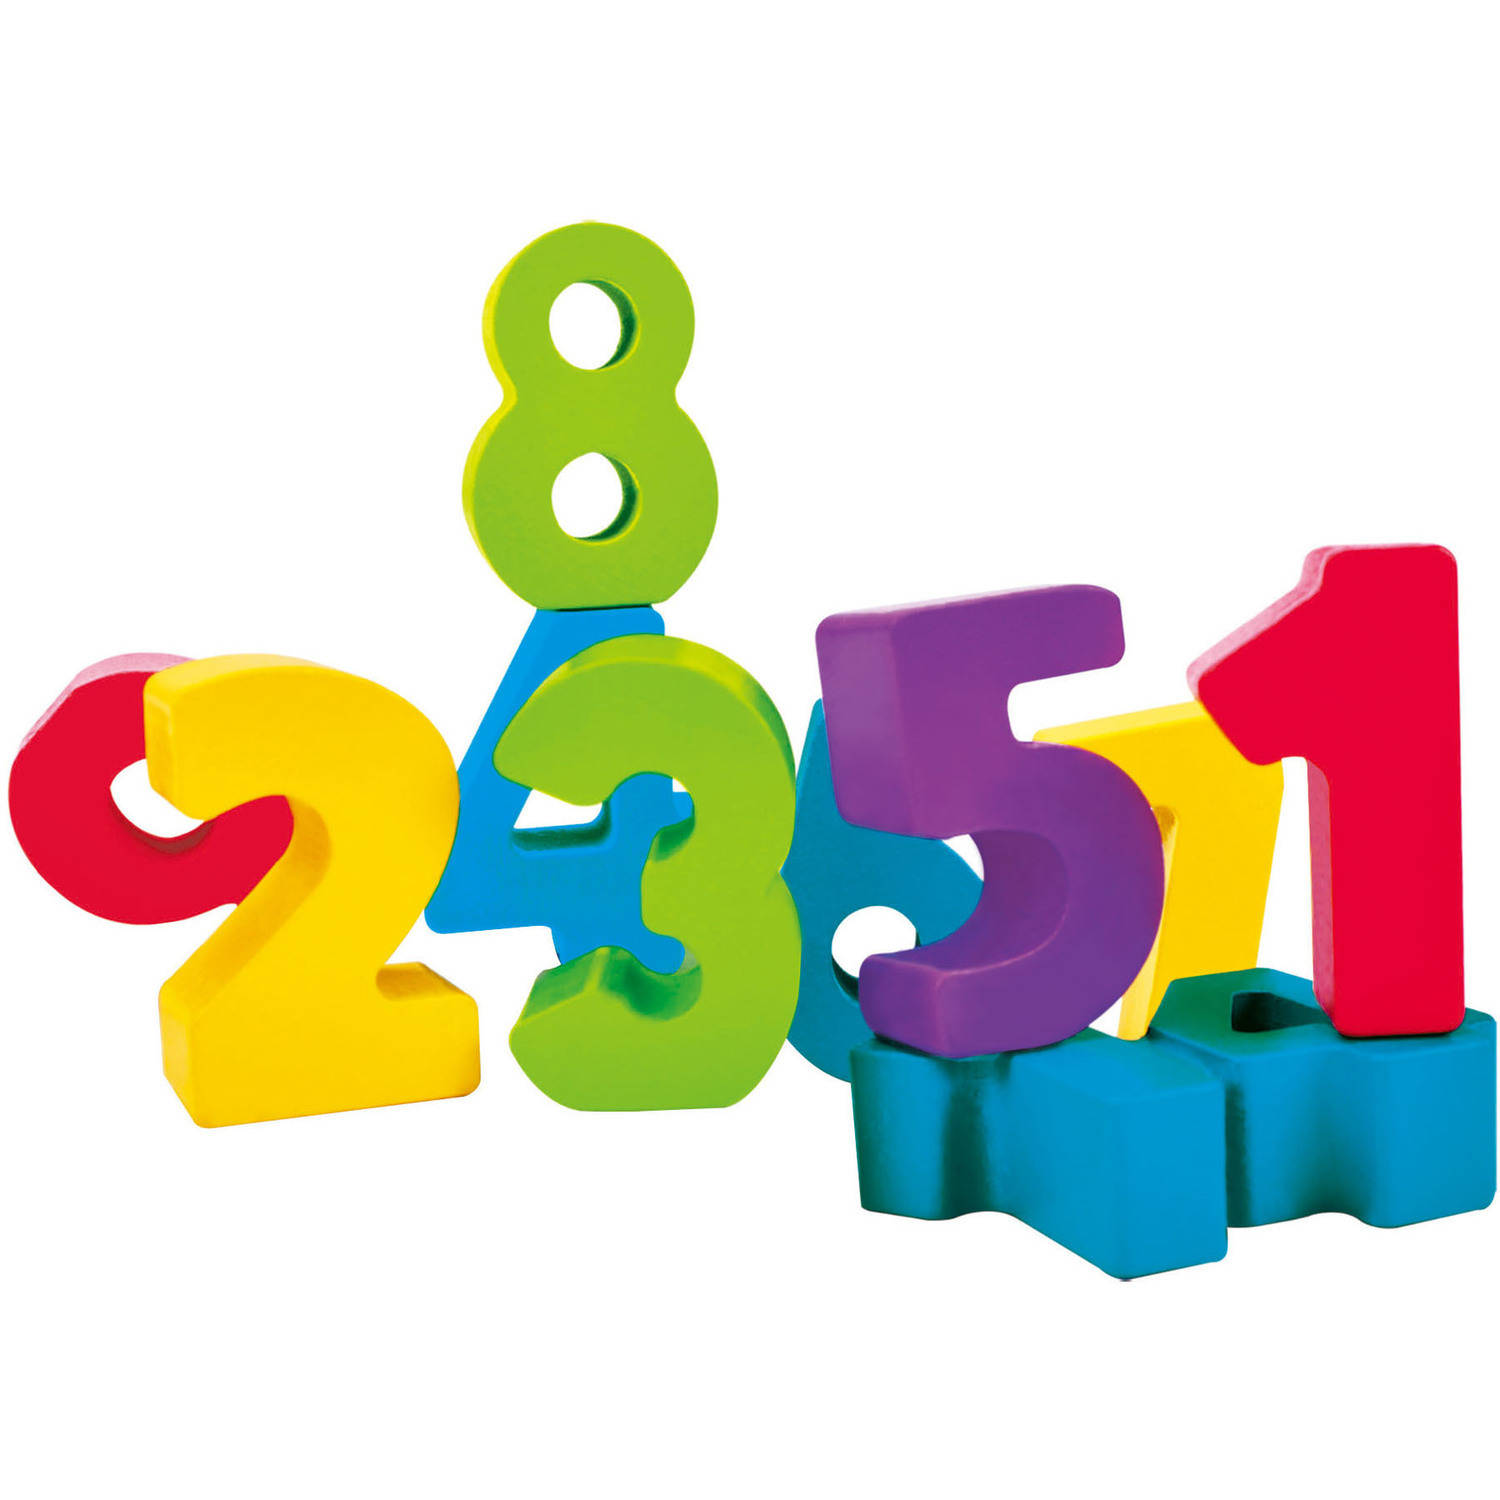 Image of J'adore 1 to 20 Numbers+Math